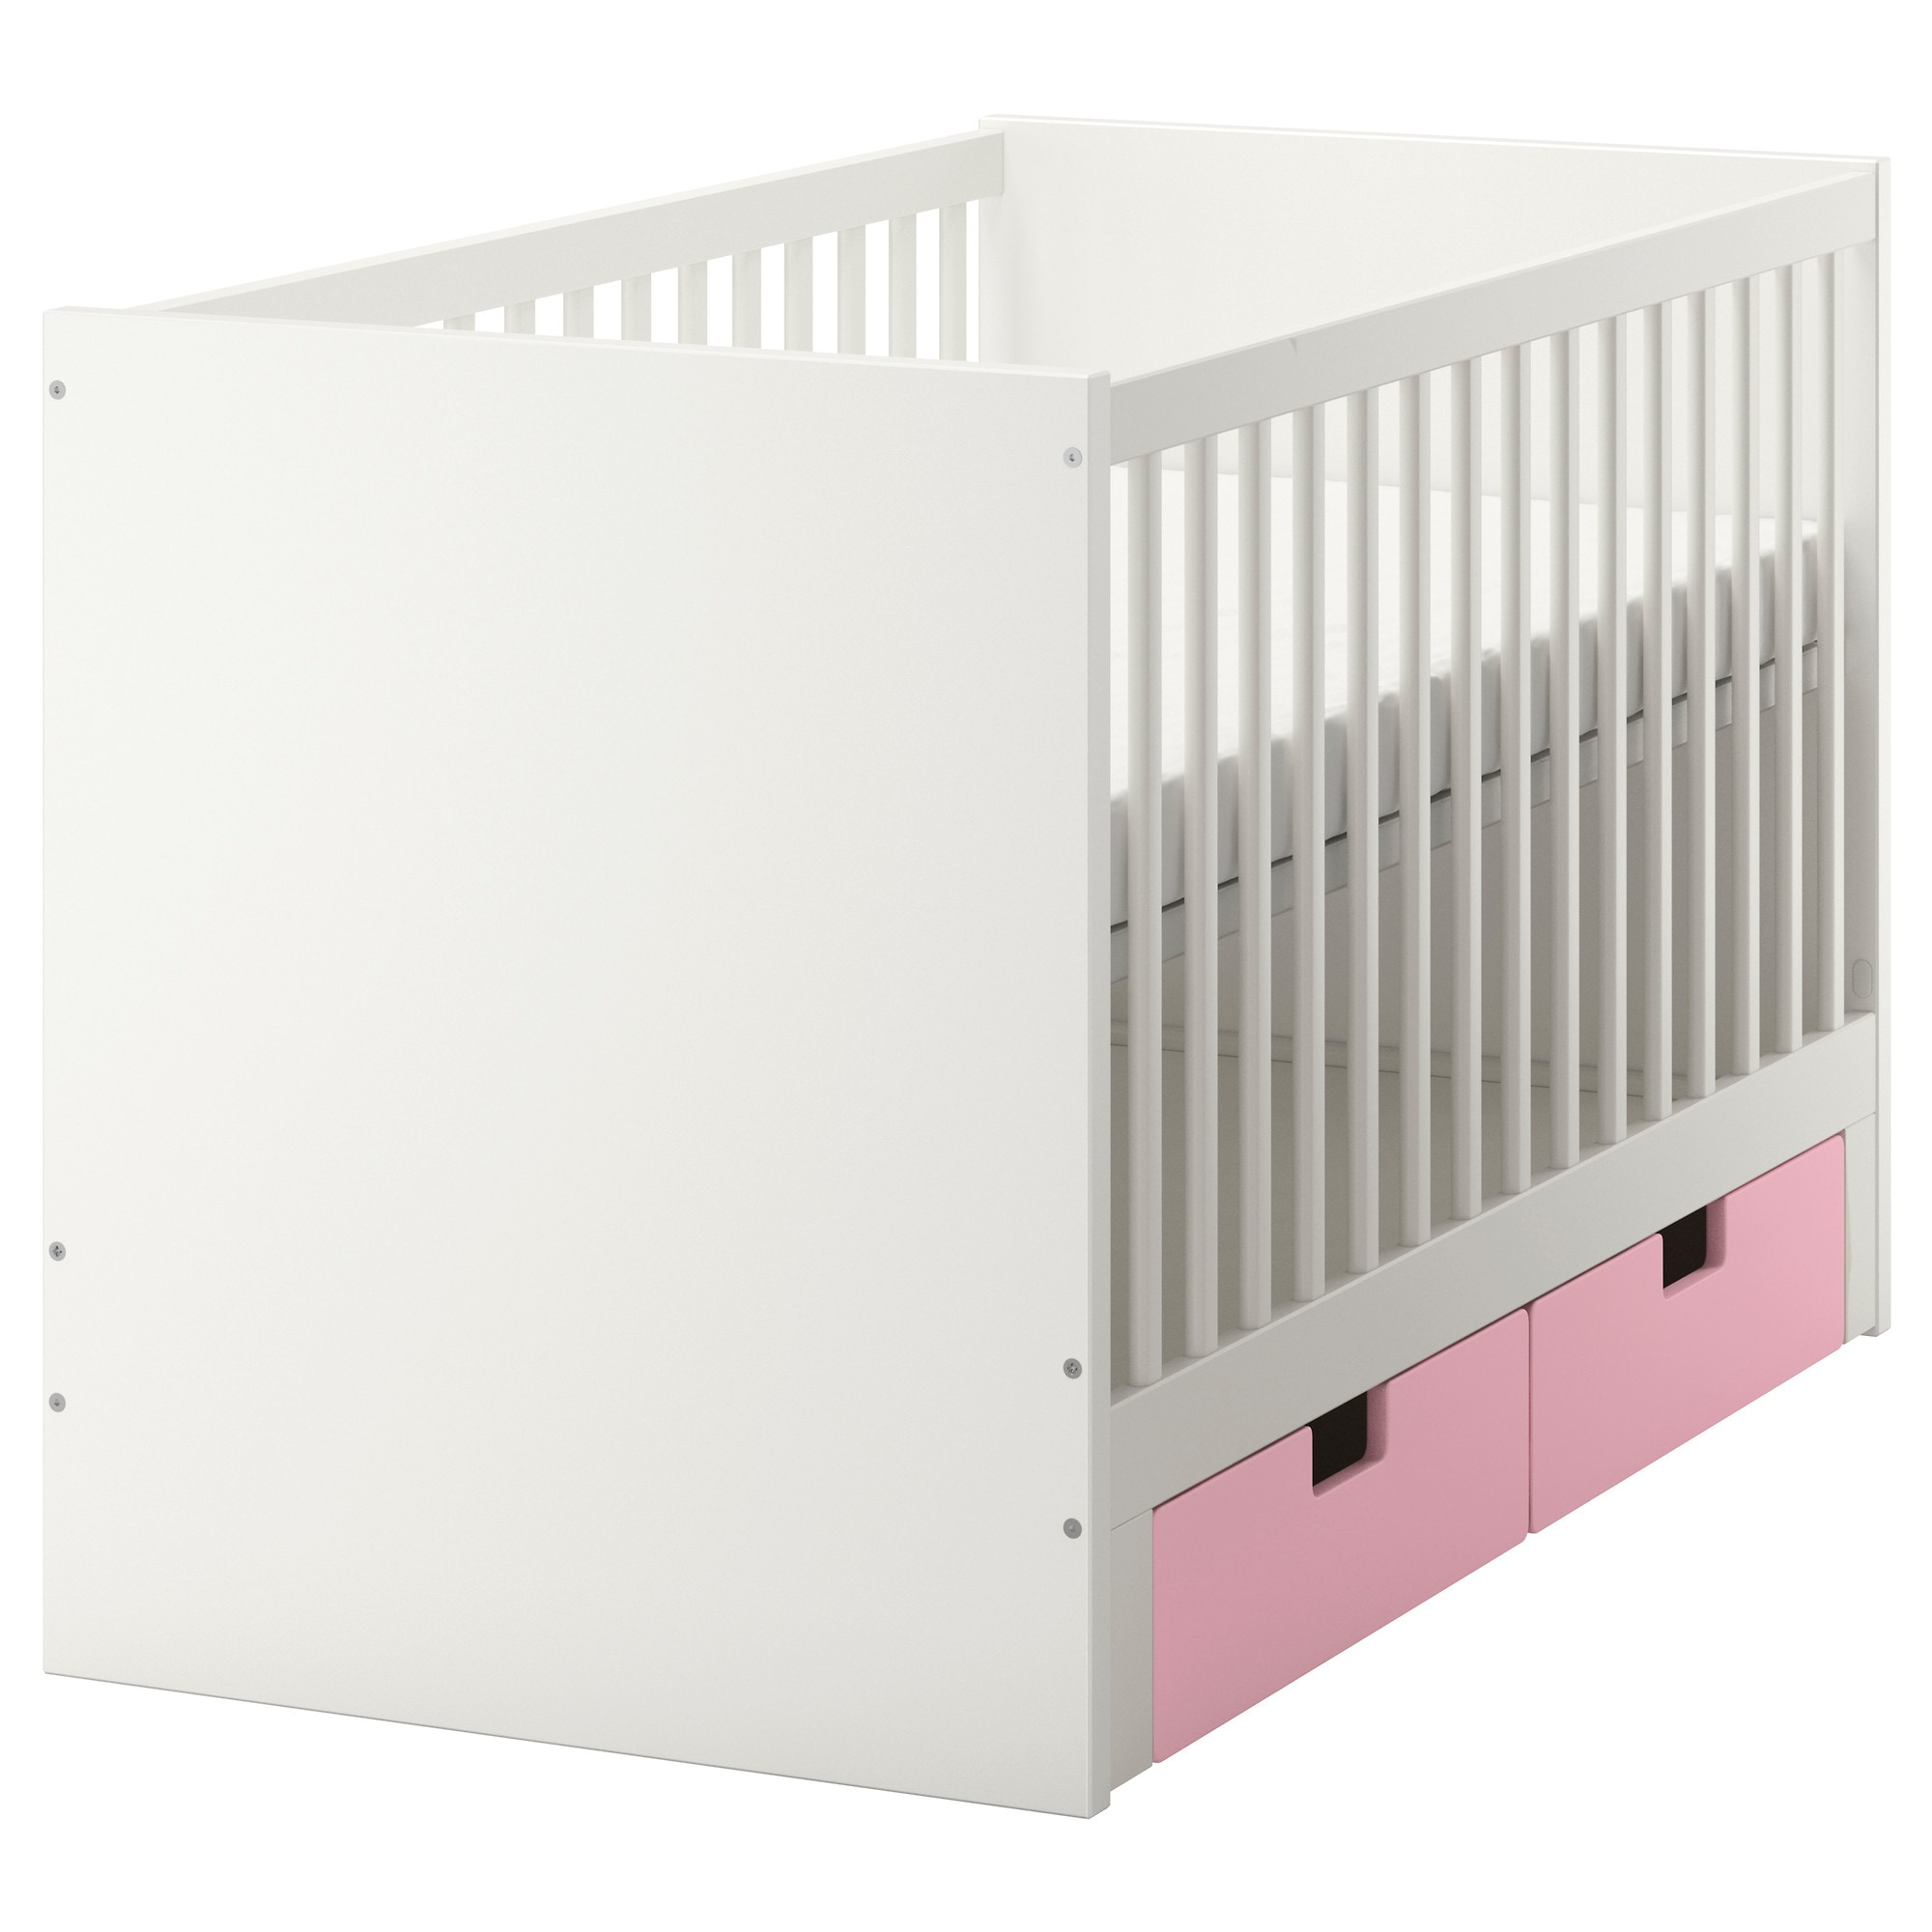 Crib heights for babies - Inter Ikea Systems B V 1999 2017 Privacy Policy